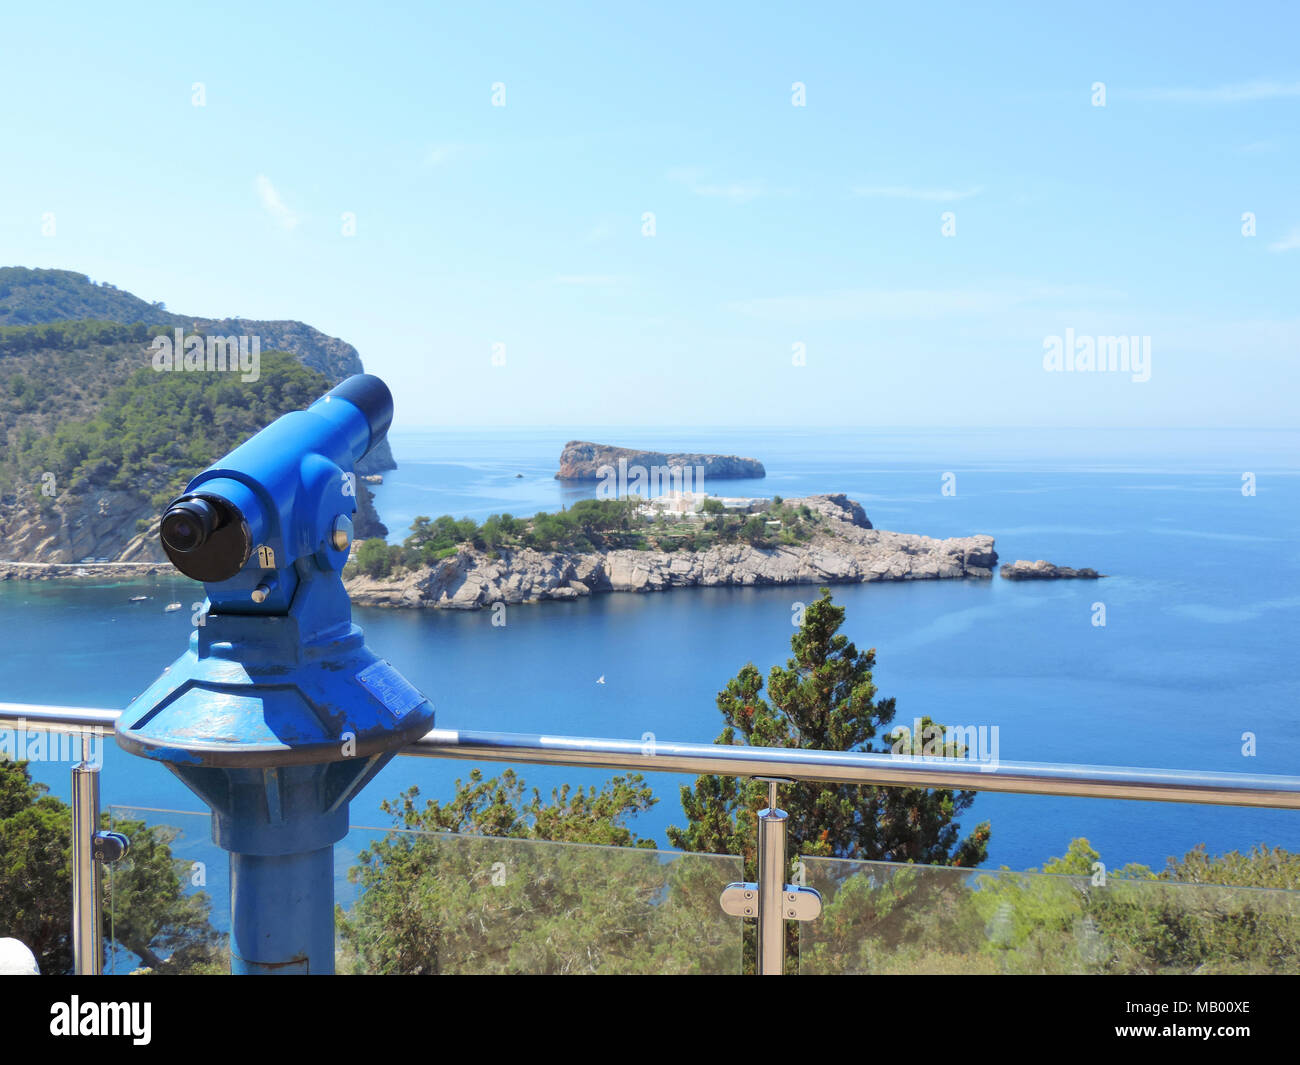 Lookout point with binoculars or telescope. Ibiza viewpoint onto a cliff coast. - Stock Image